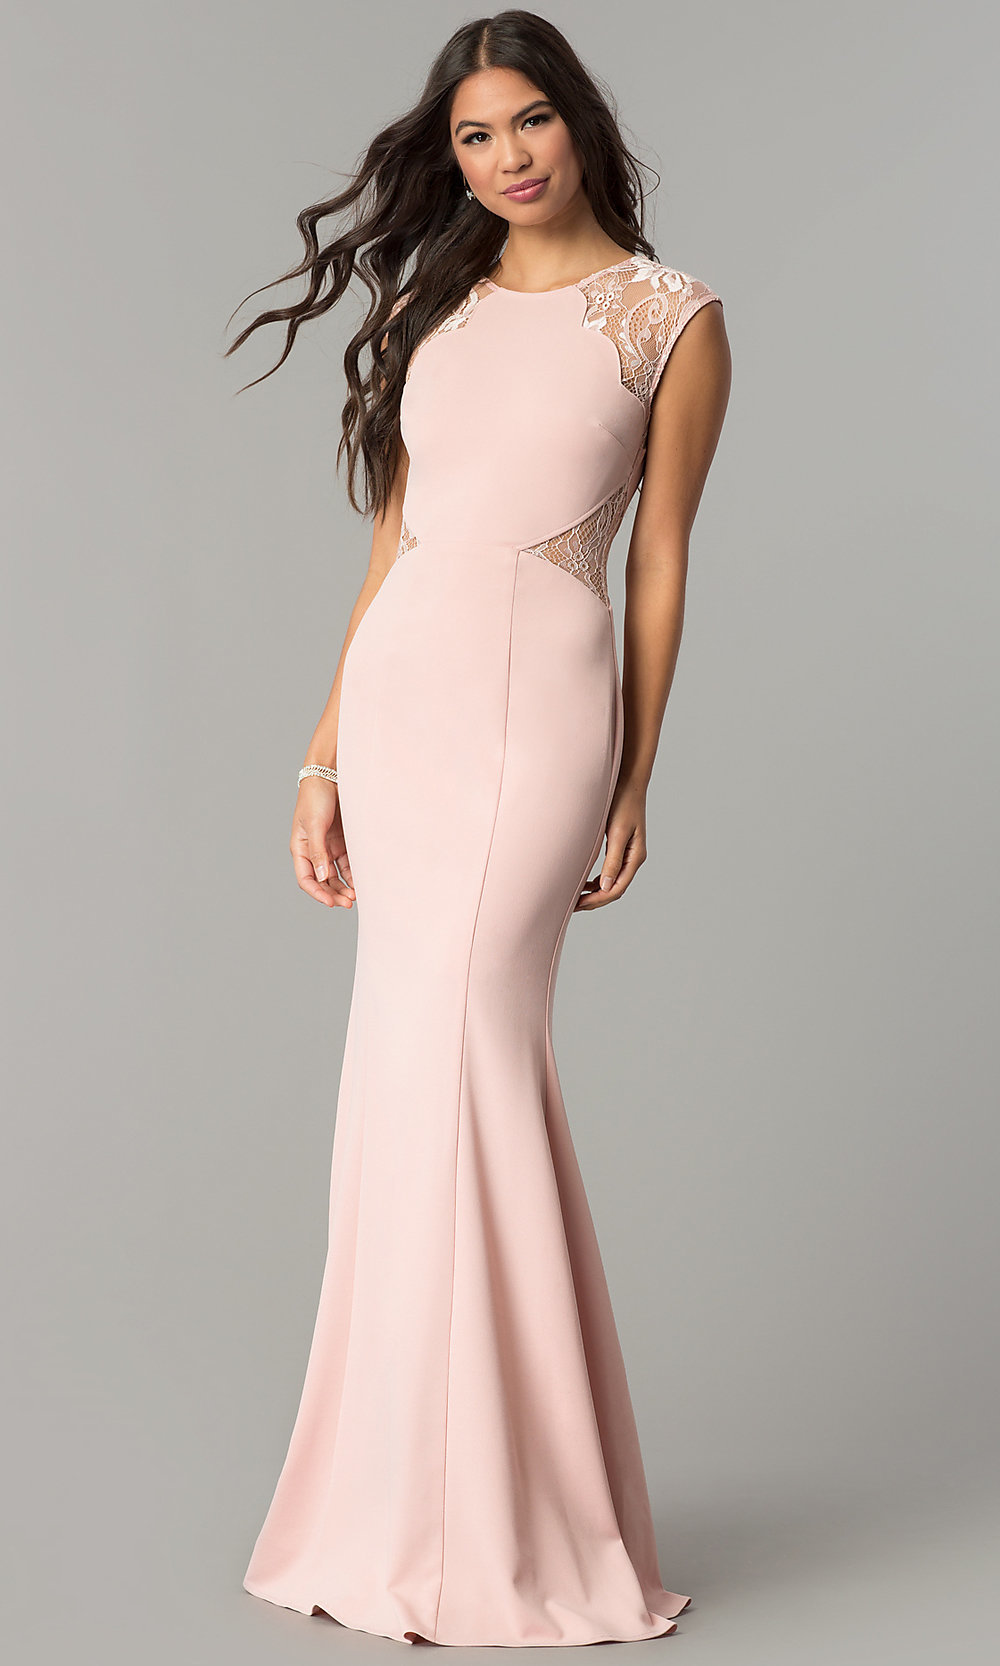 b90d3e4fbd1c Long Formal Prom Dress with Lace Cap Sleeves -PromGirl